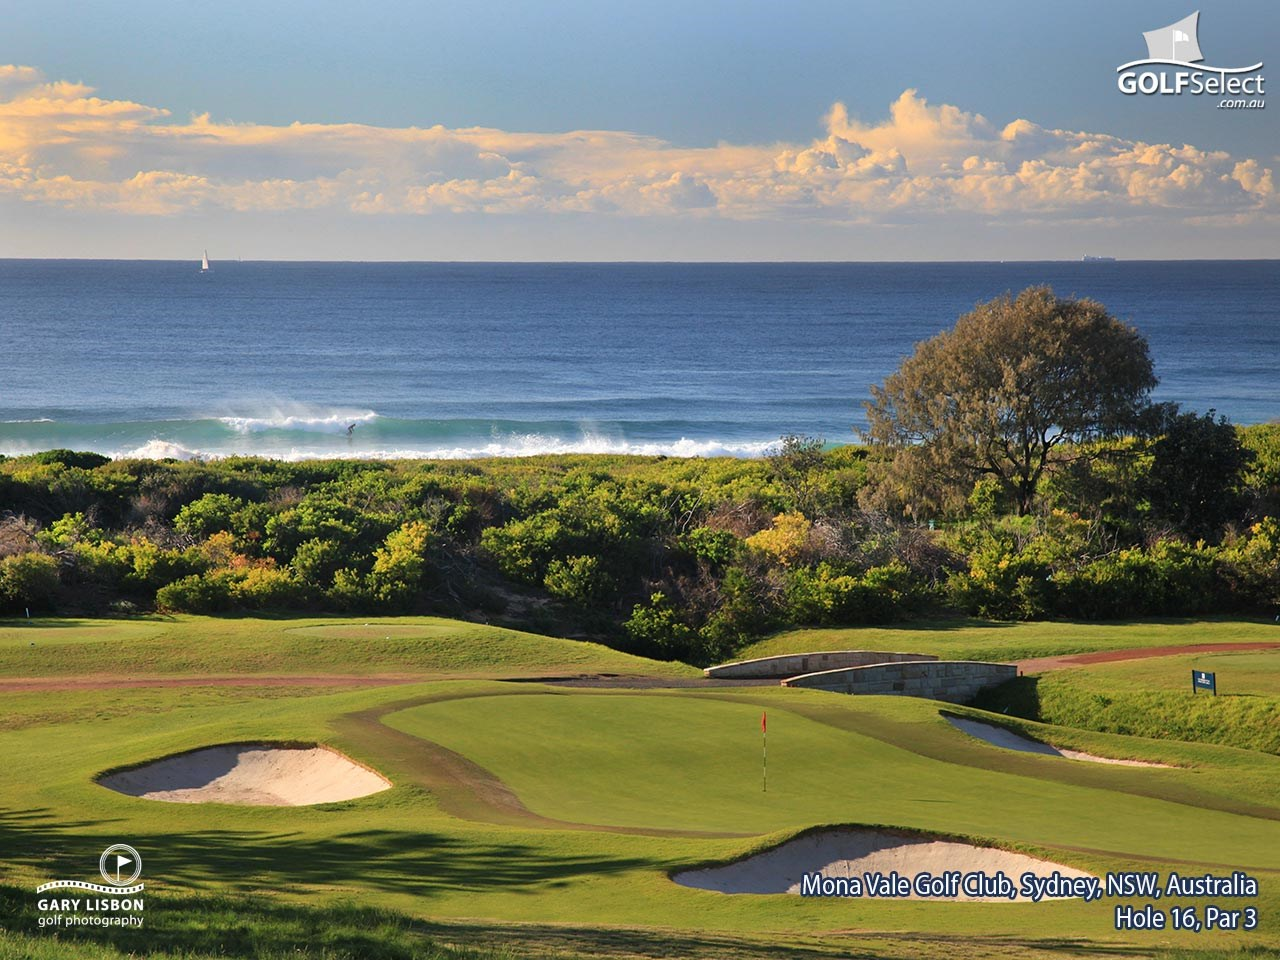 Mona Vale Golf Club Hole 16, Par 3